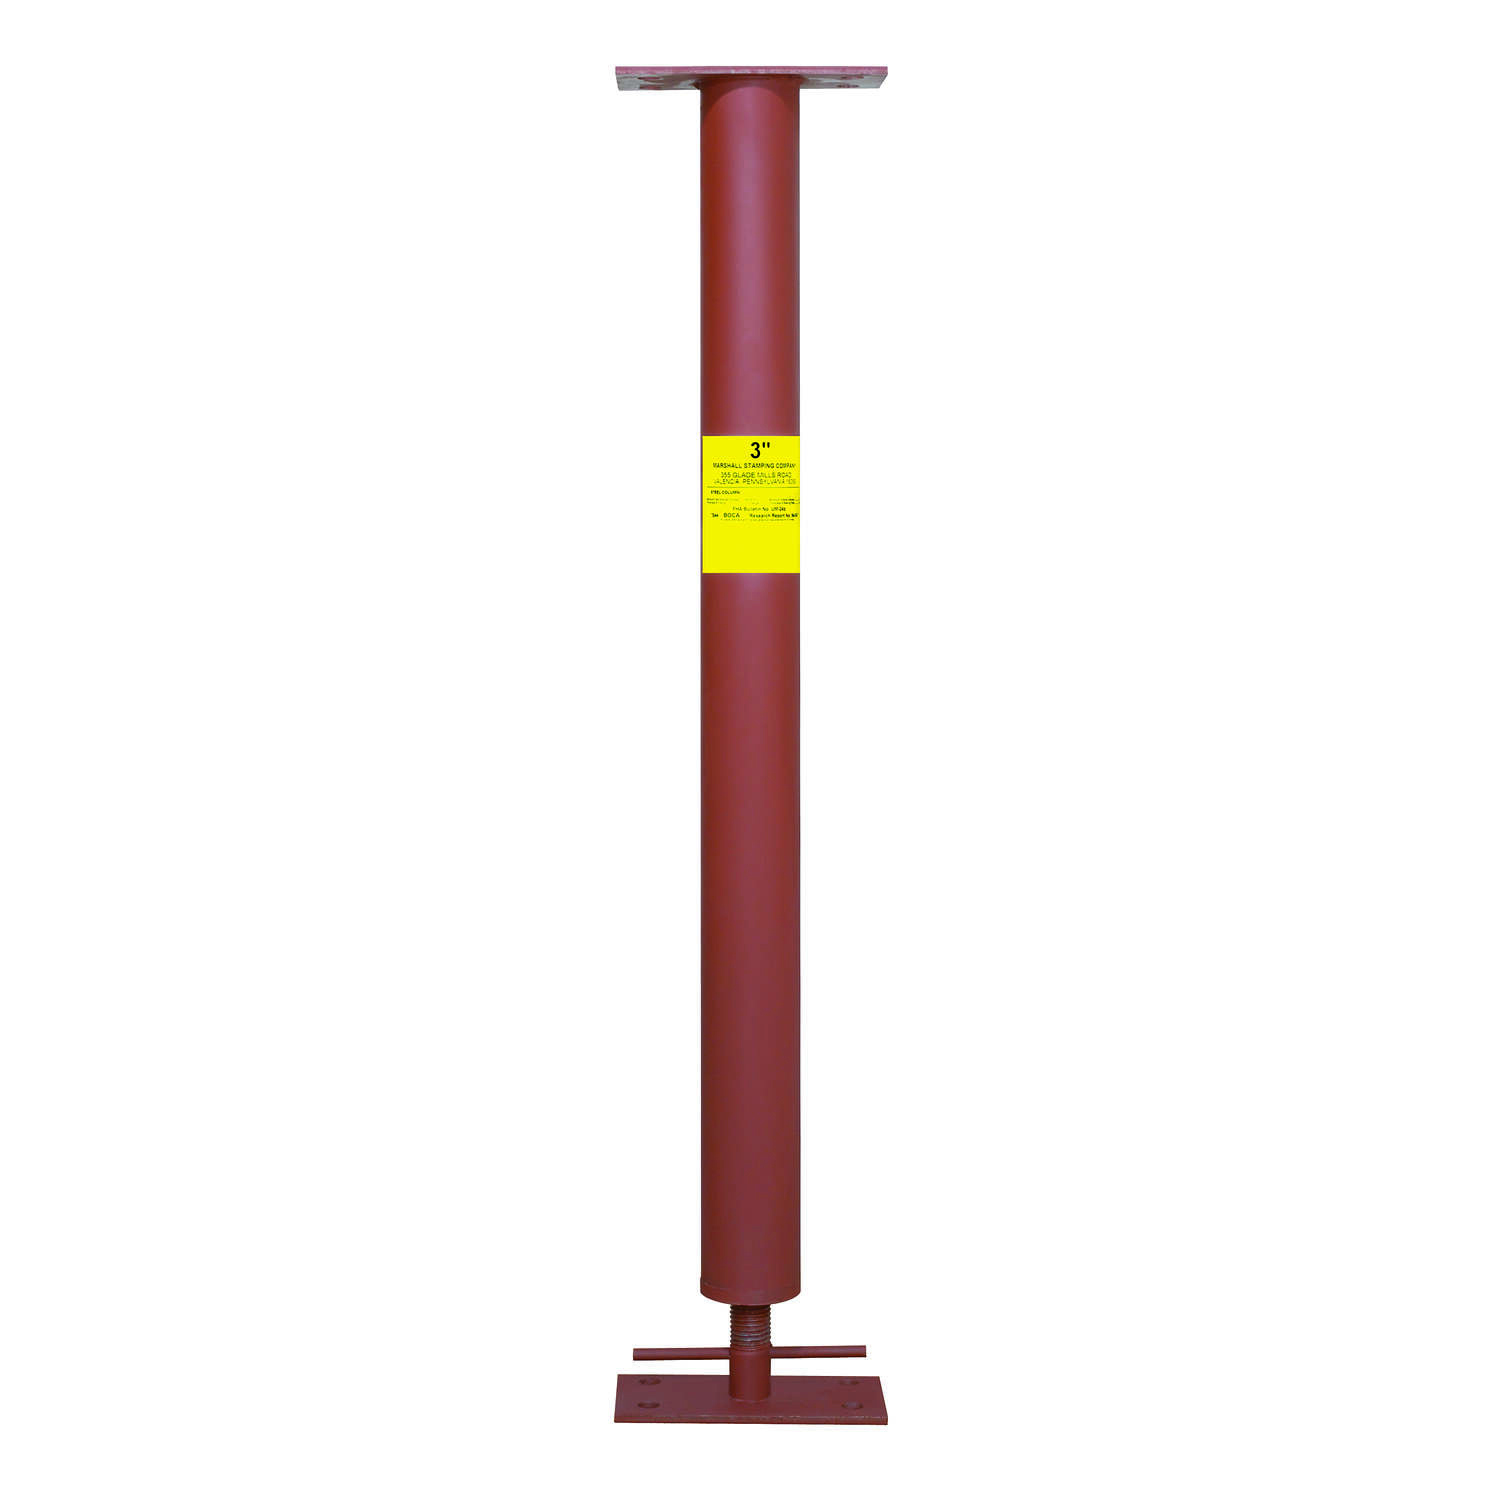 Marshall Stamping  Extend-O-Columns  3 in. Dia. x 85 in. H Adjustable Building Support Column  17300